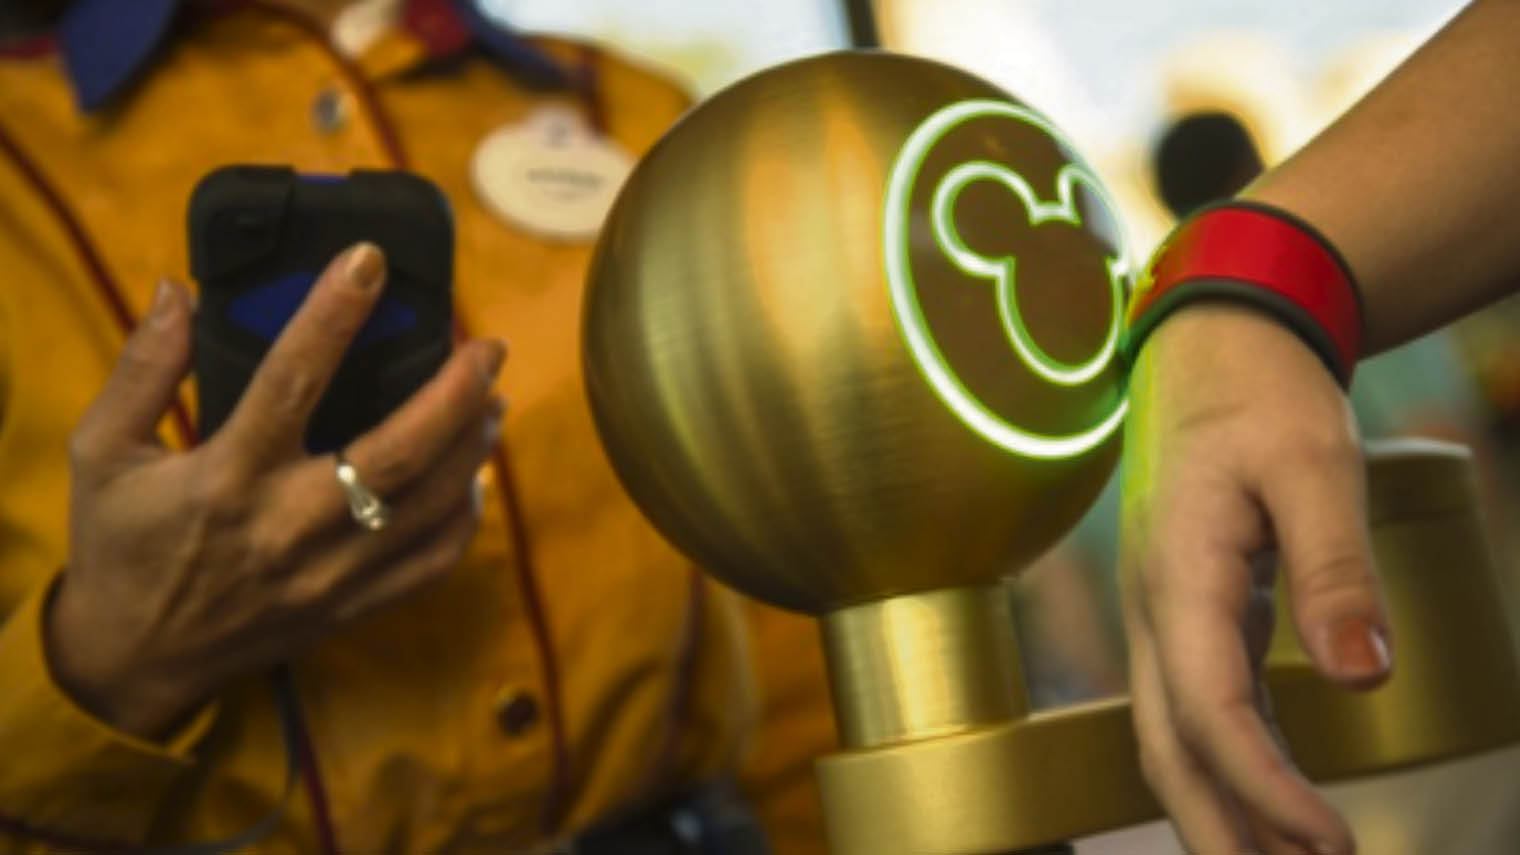 walt-disney-worlds-magicband-system-collects-customer-data-as-guests-tap-in-and-travel-around-the-resort